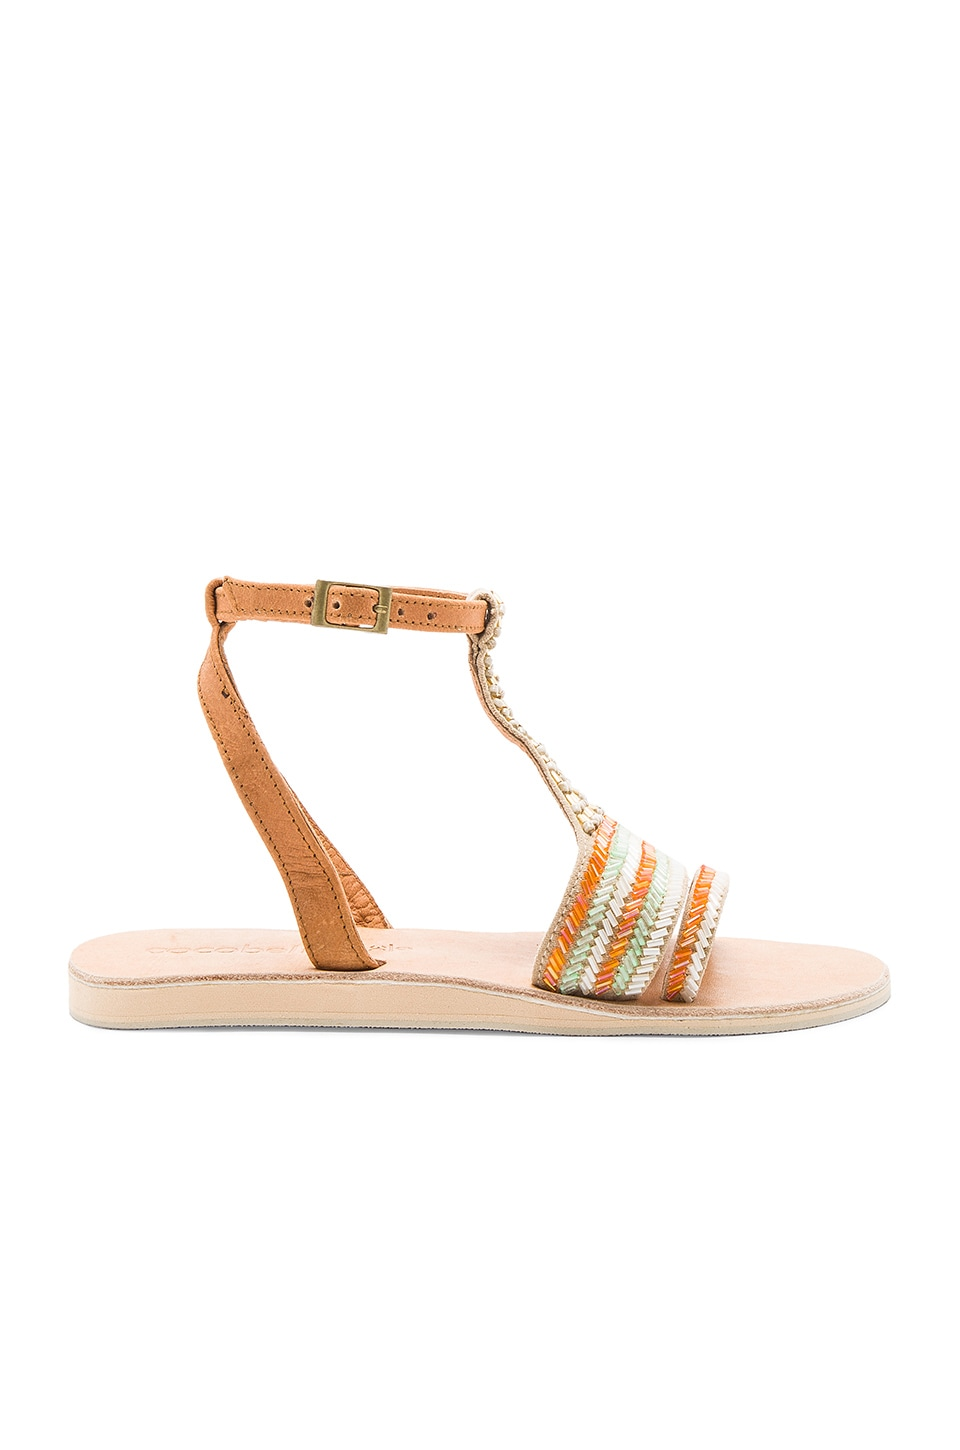 St. Jean Sandals by cocobelle